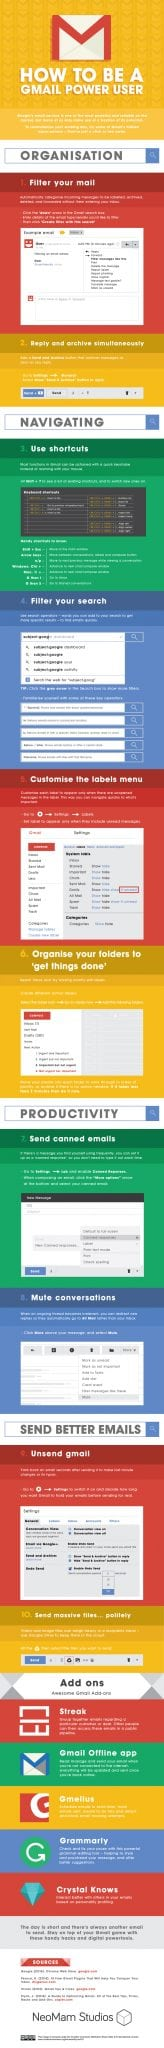 How-to-be-a-Gmail-power-user